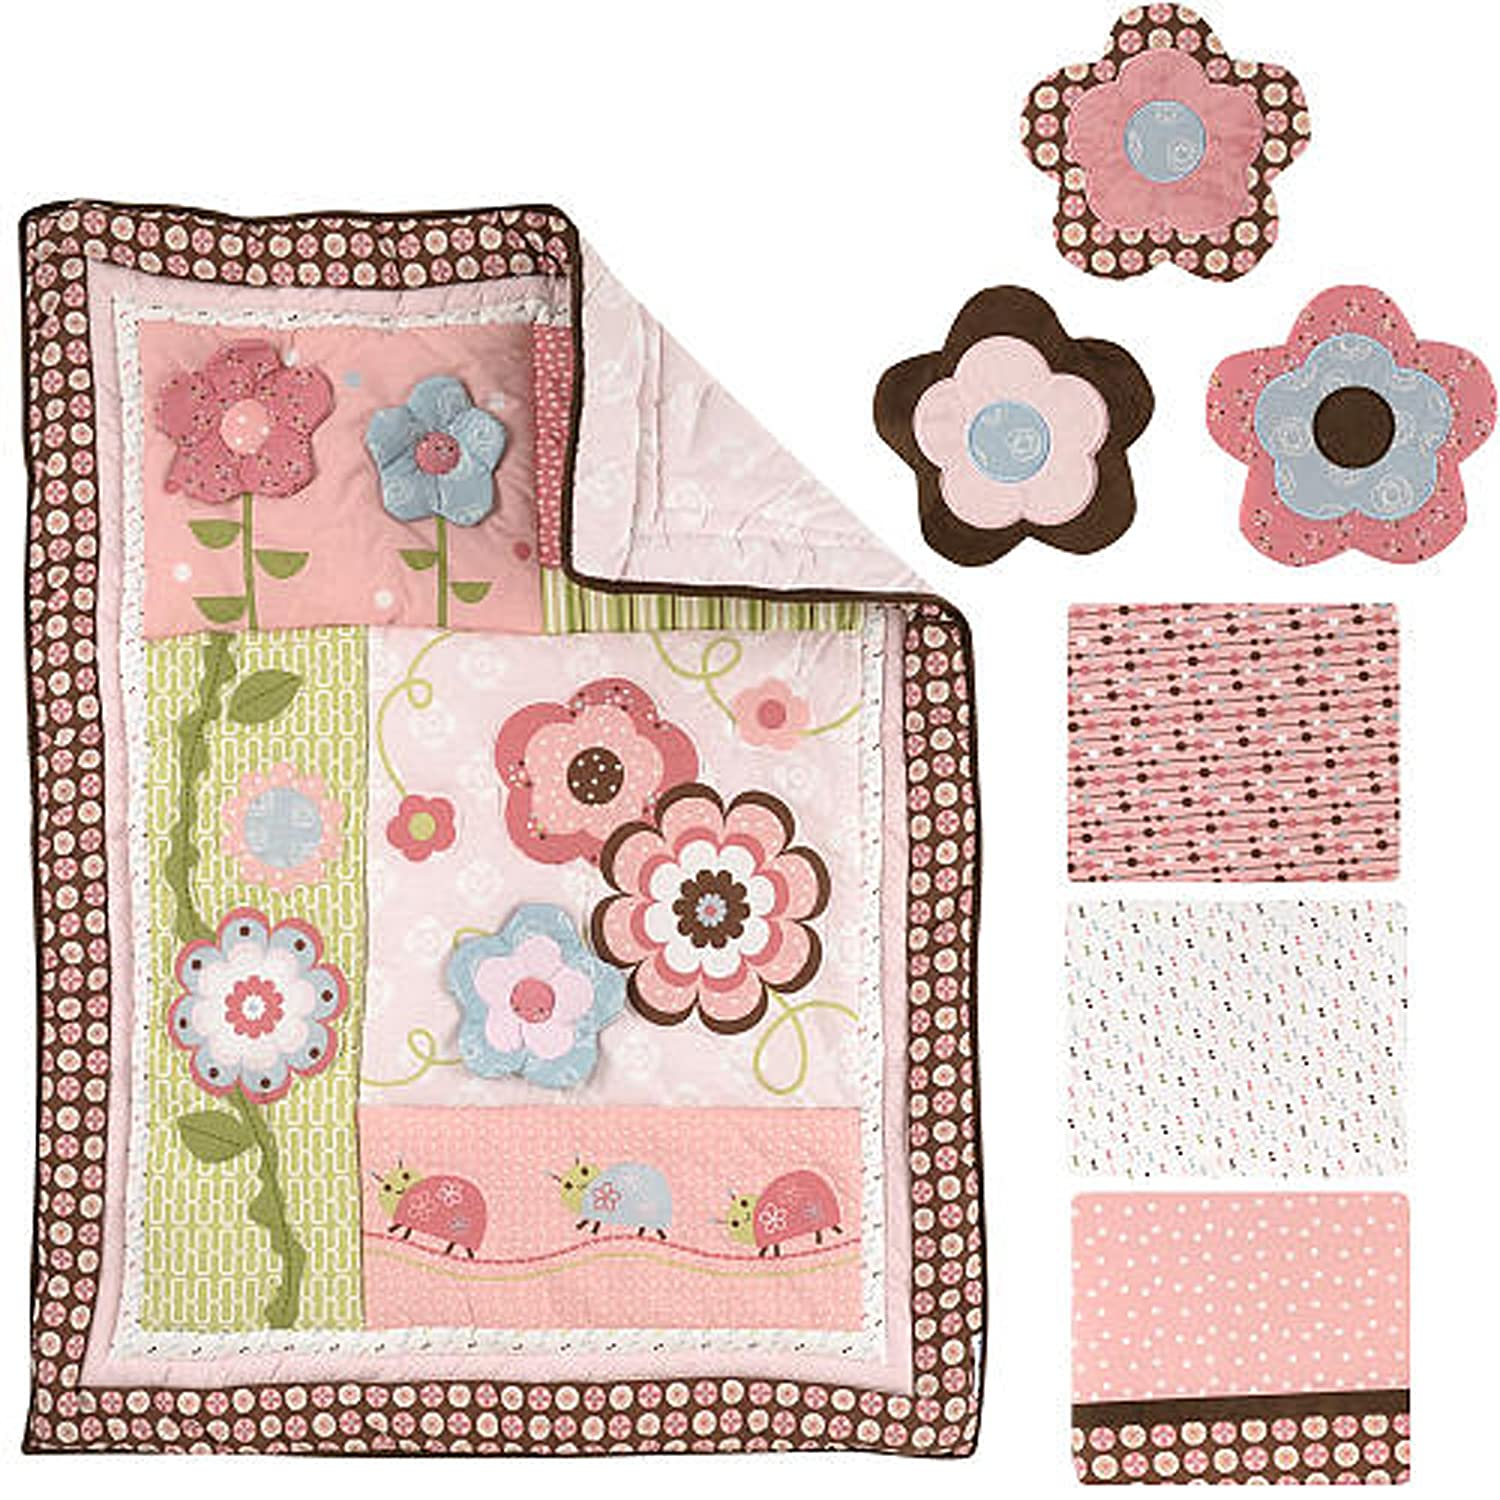 B008H3ST6Y Graco 7 Piece Crib Bedding Set, Garden Girl (Discontinued by Manufacturer) 91vpgKWumiL._SL1500_